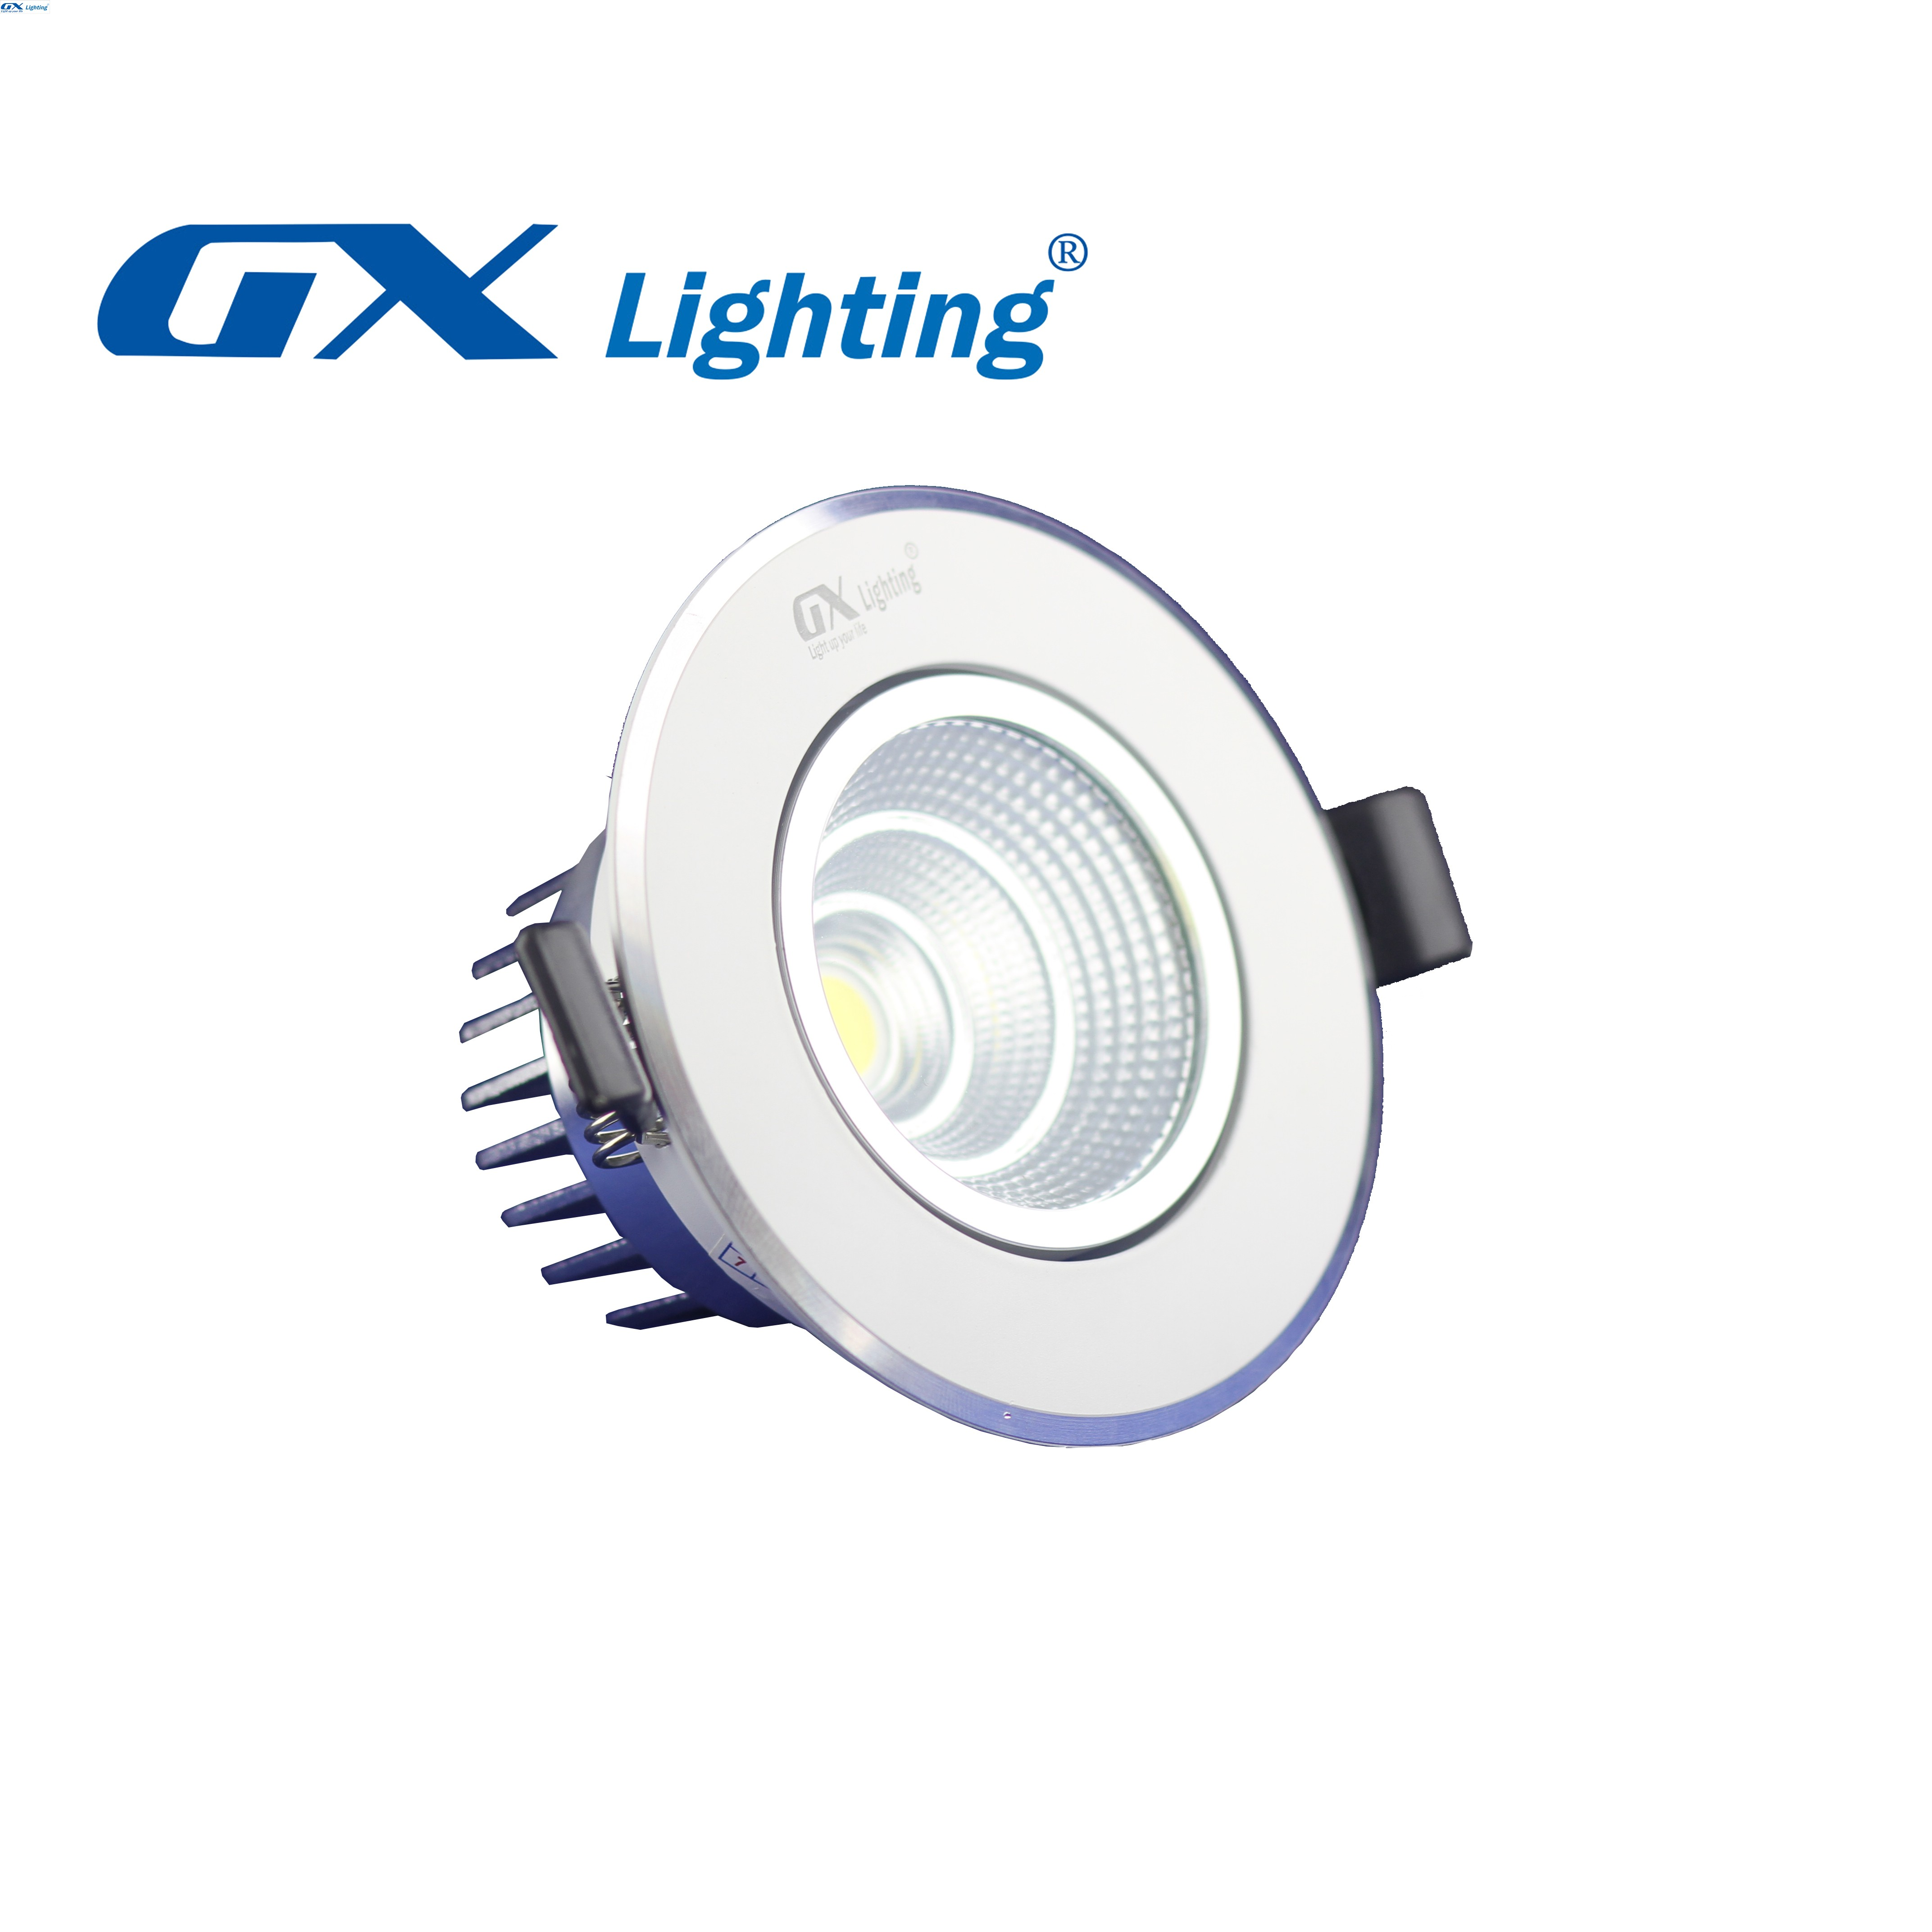 den-led-am-tran-cob-gx-lighting-thd-309-1b